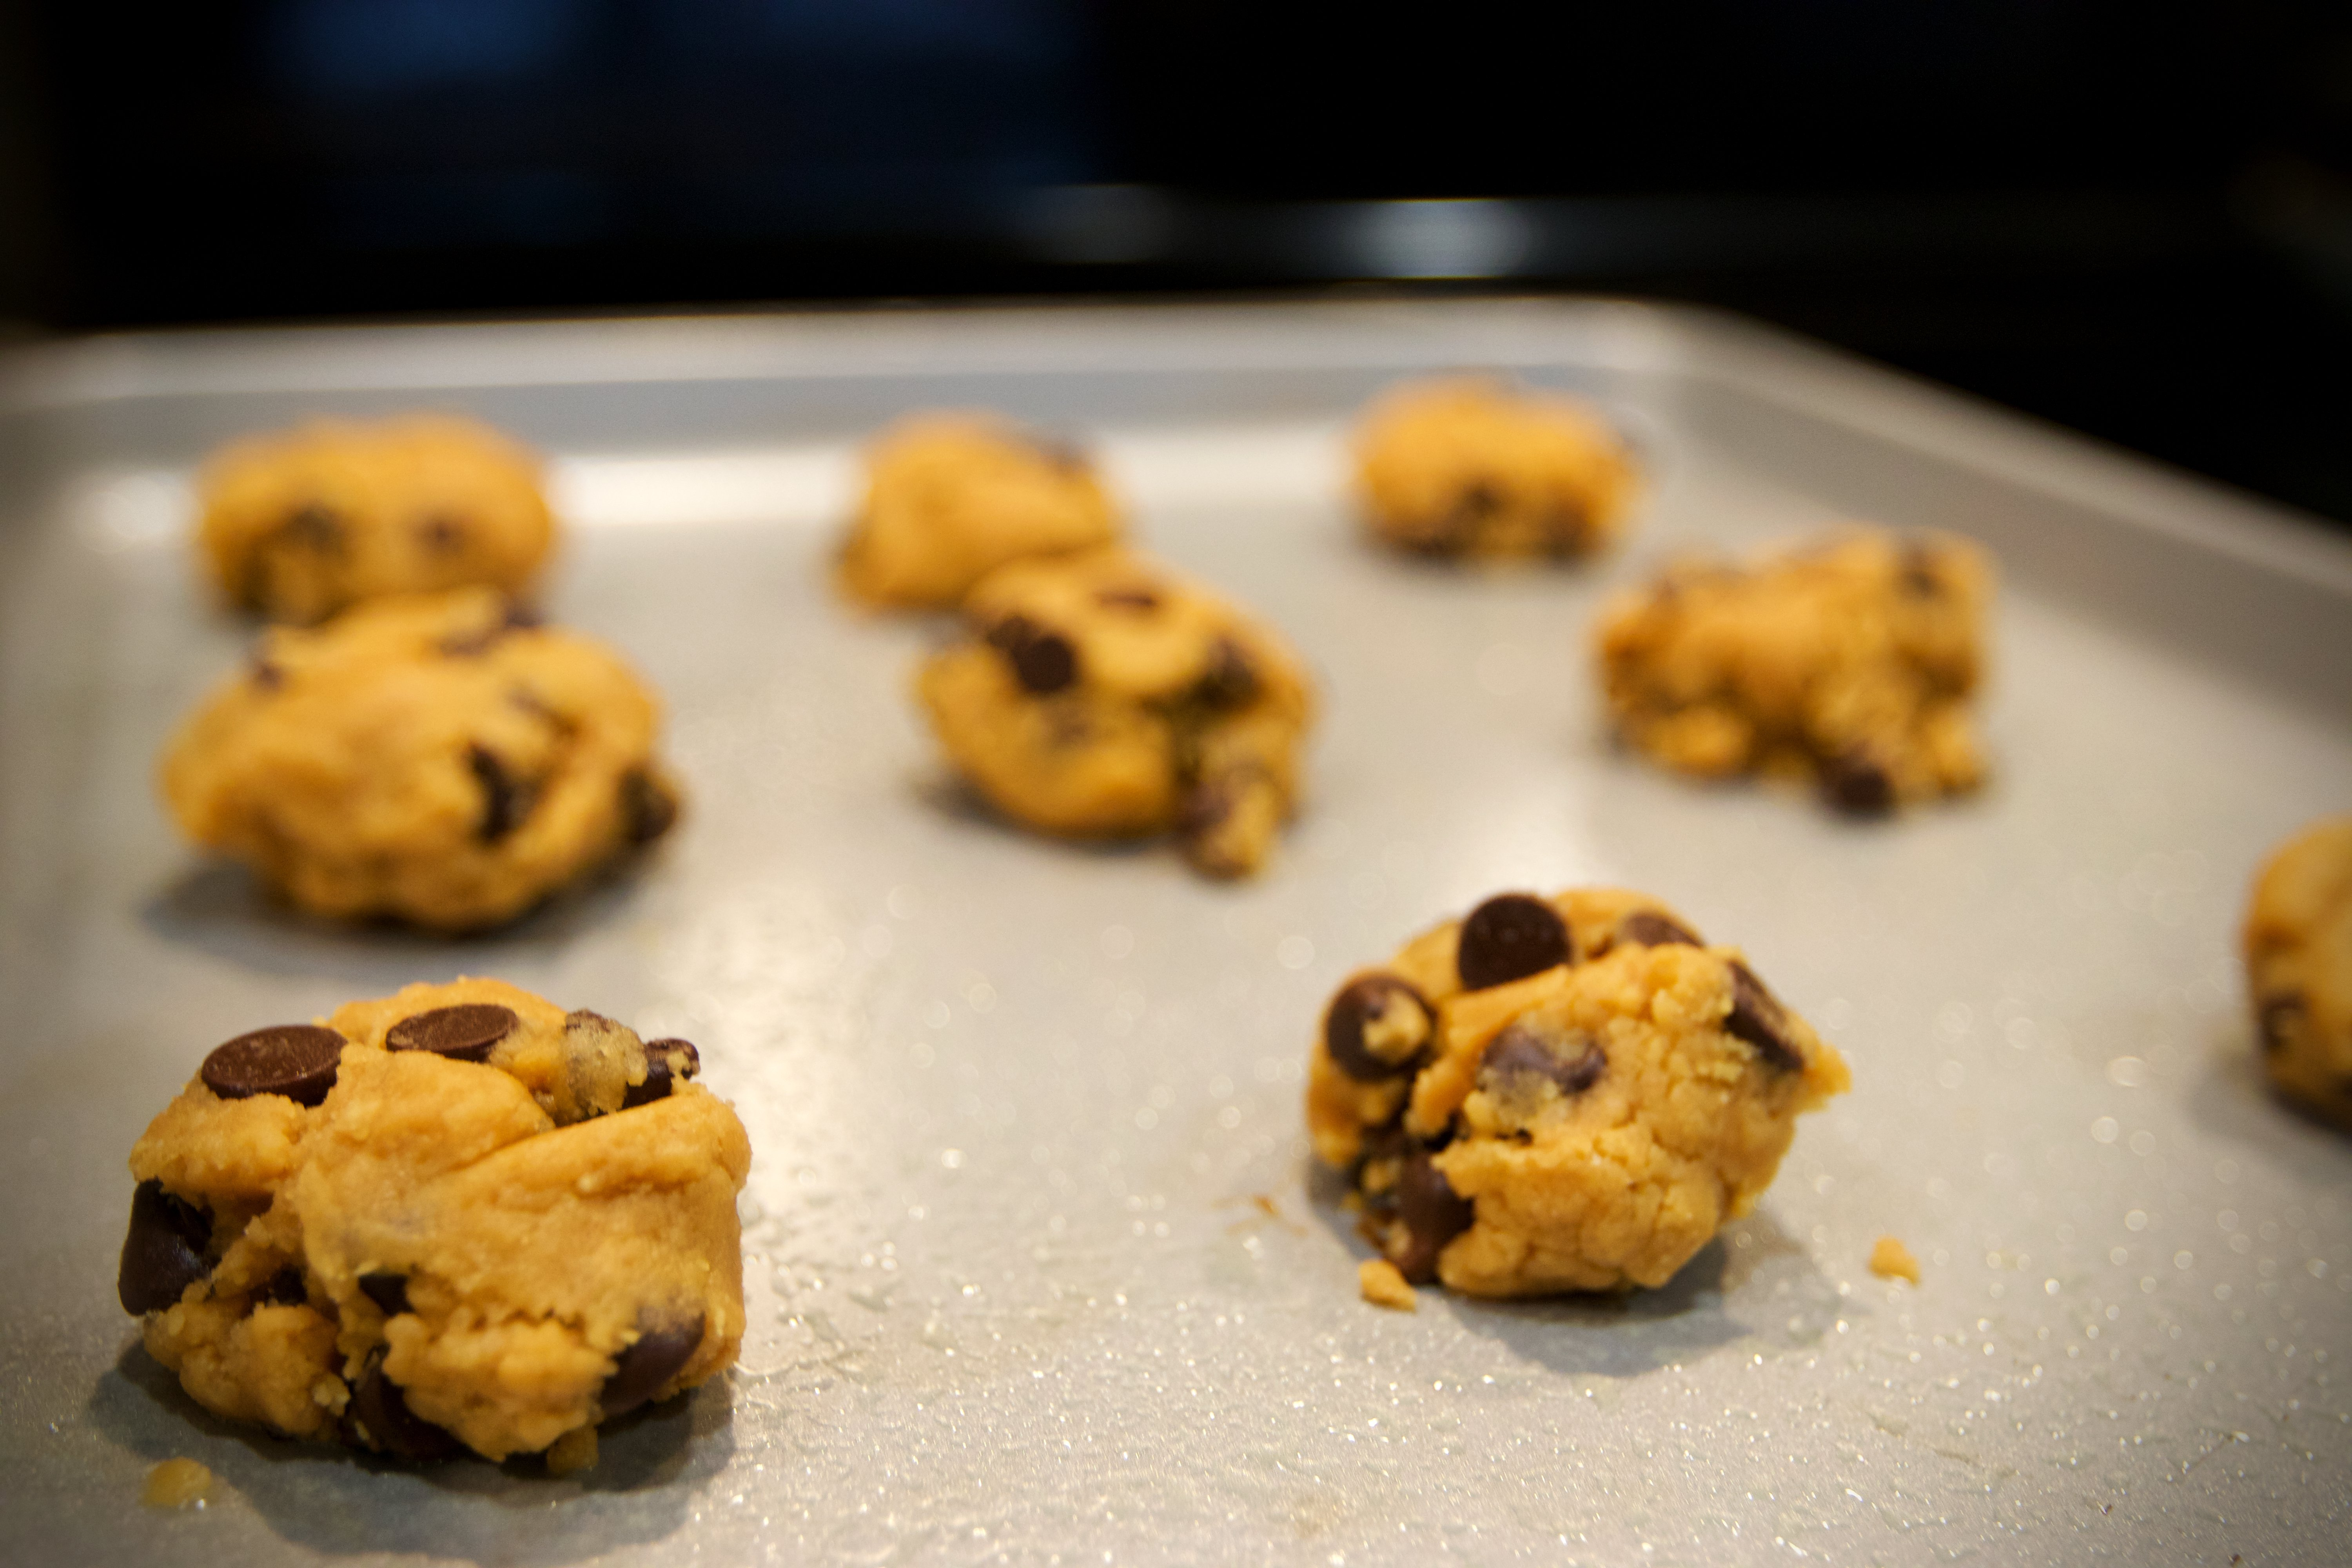 Up-close picture of cookie dough laid out on cookie sheet.